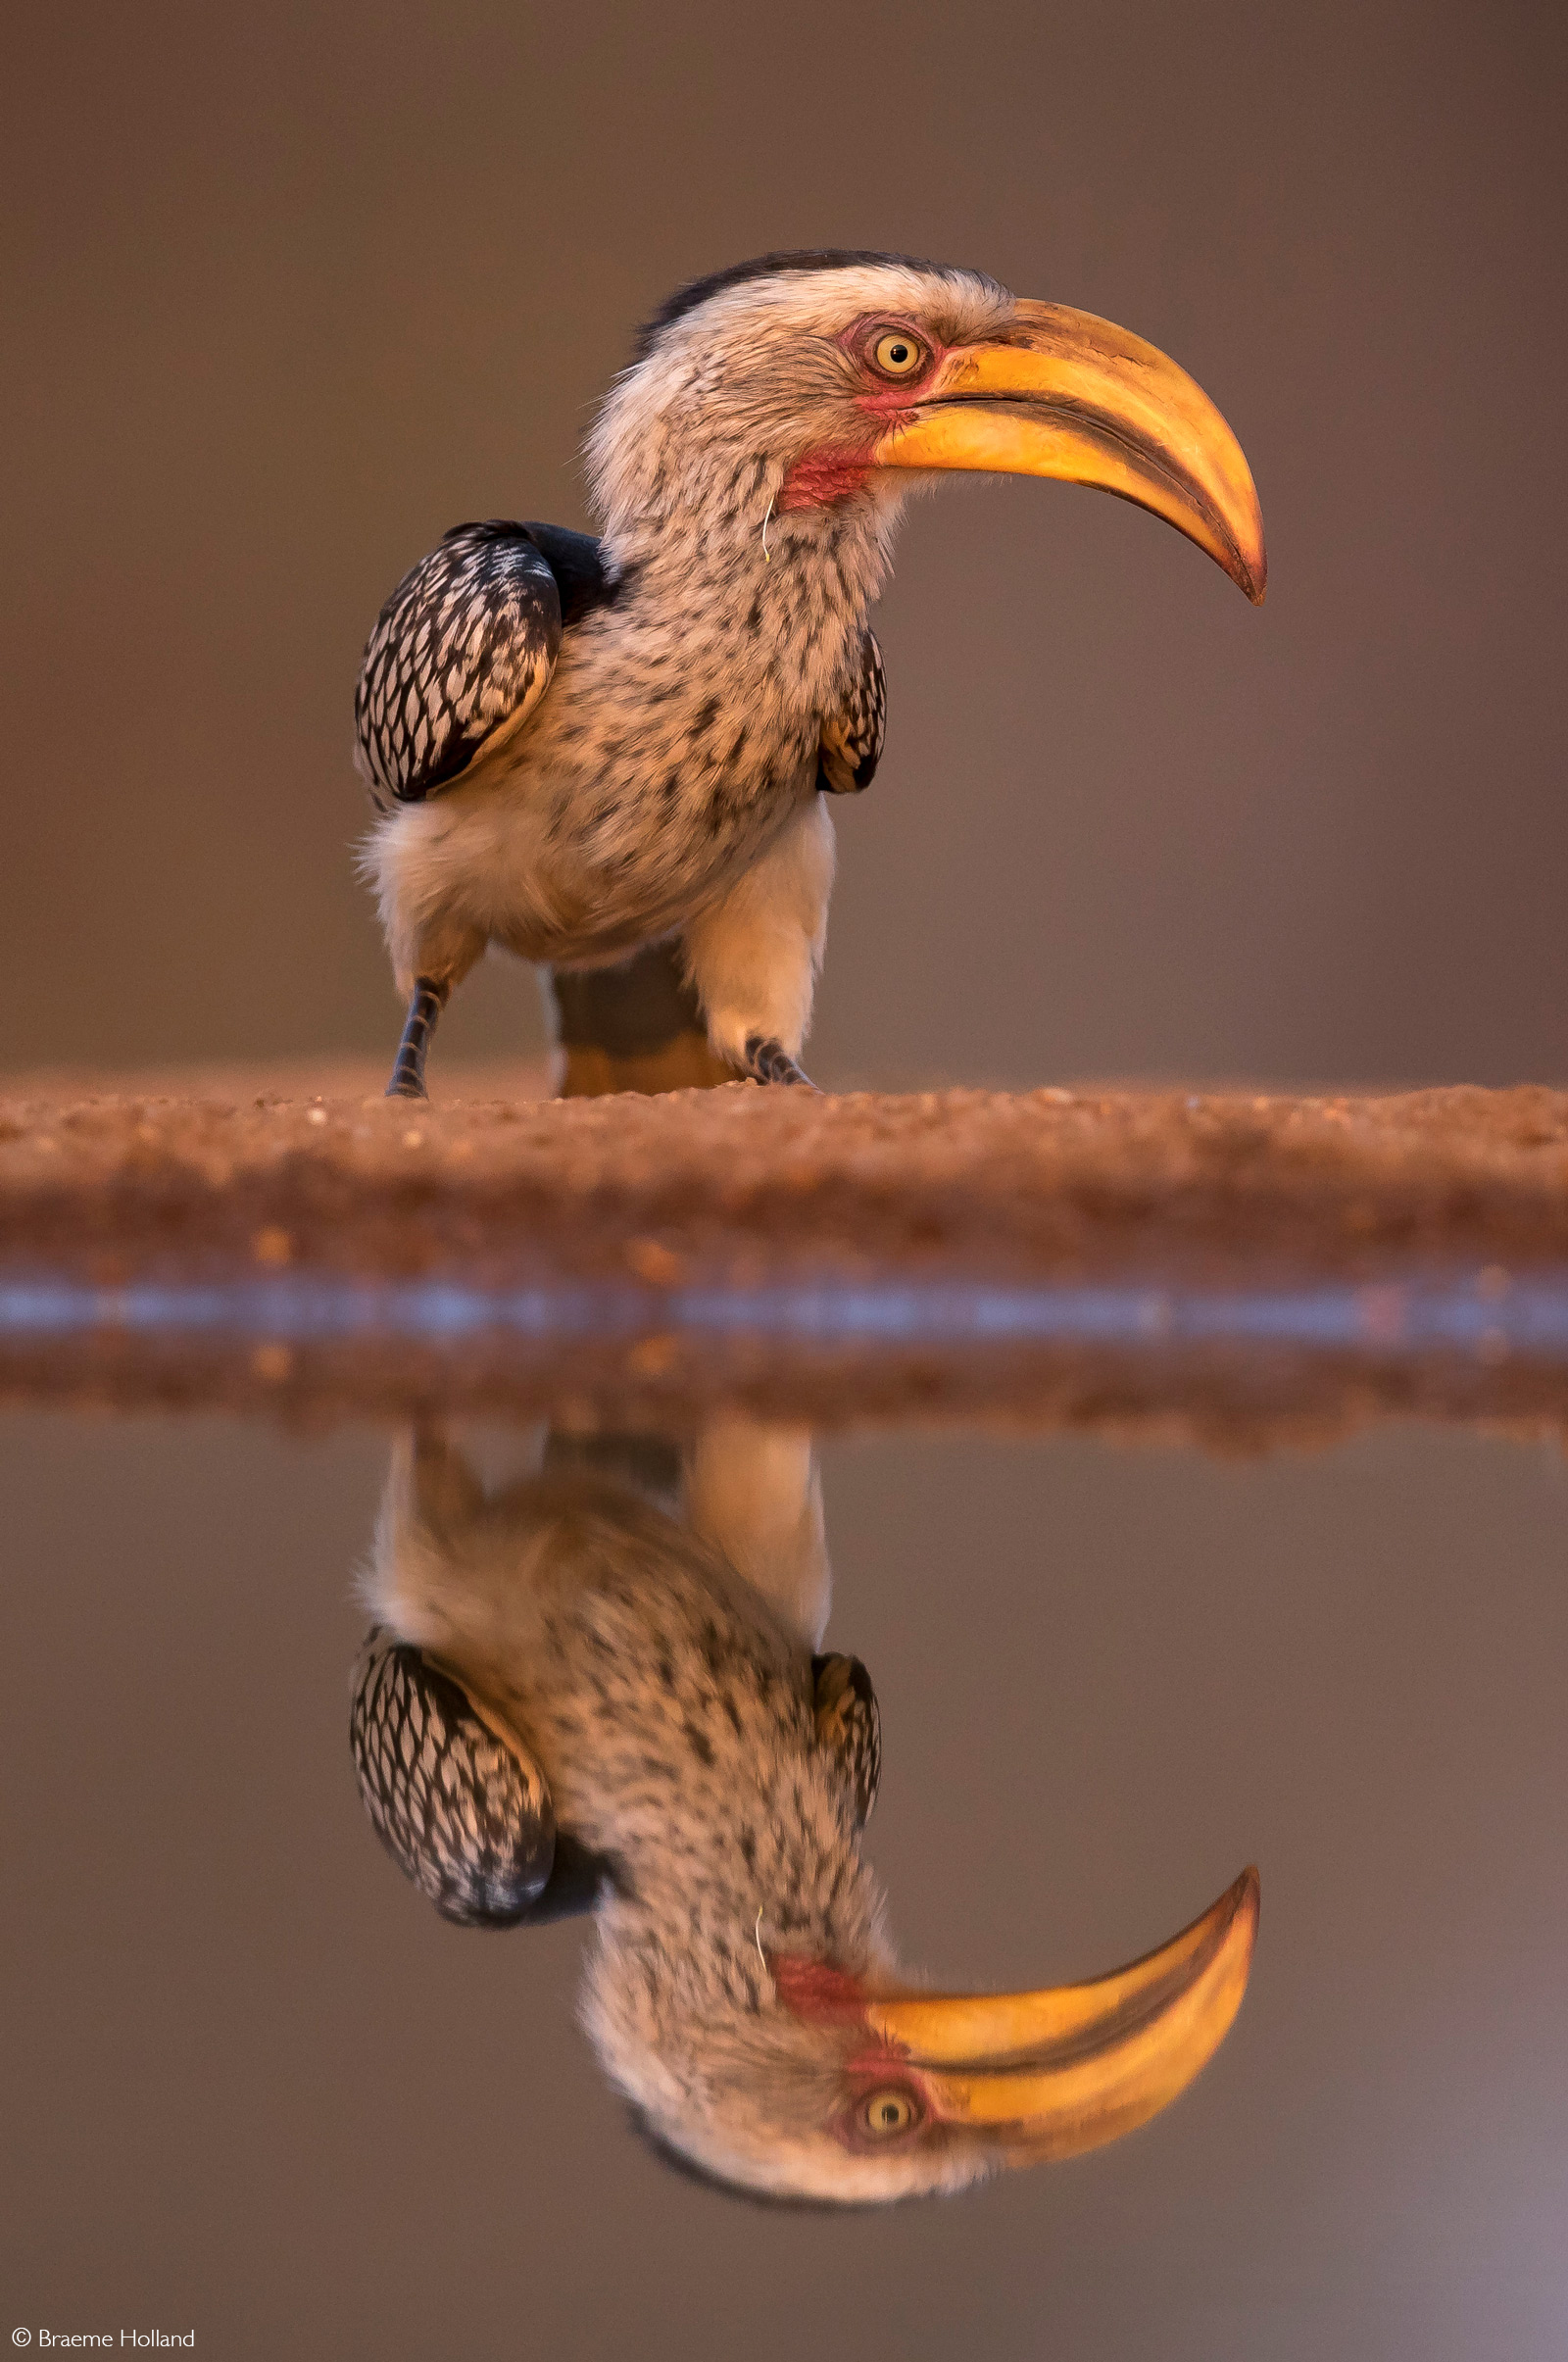 A yellow-billed hornbill displays a perfect reflection at a waterhole. Indlovu River Lodge Private Game Reserve, Greater Kruger, South Africa © Braeme Holland